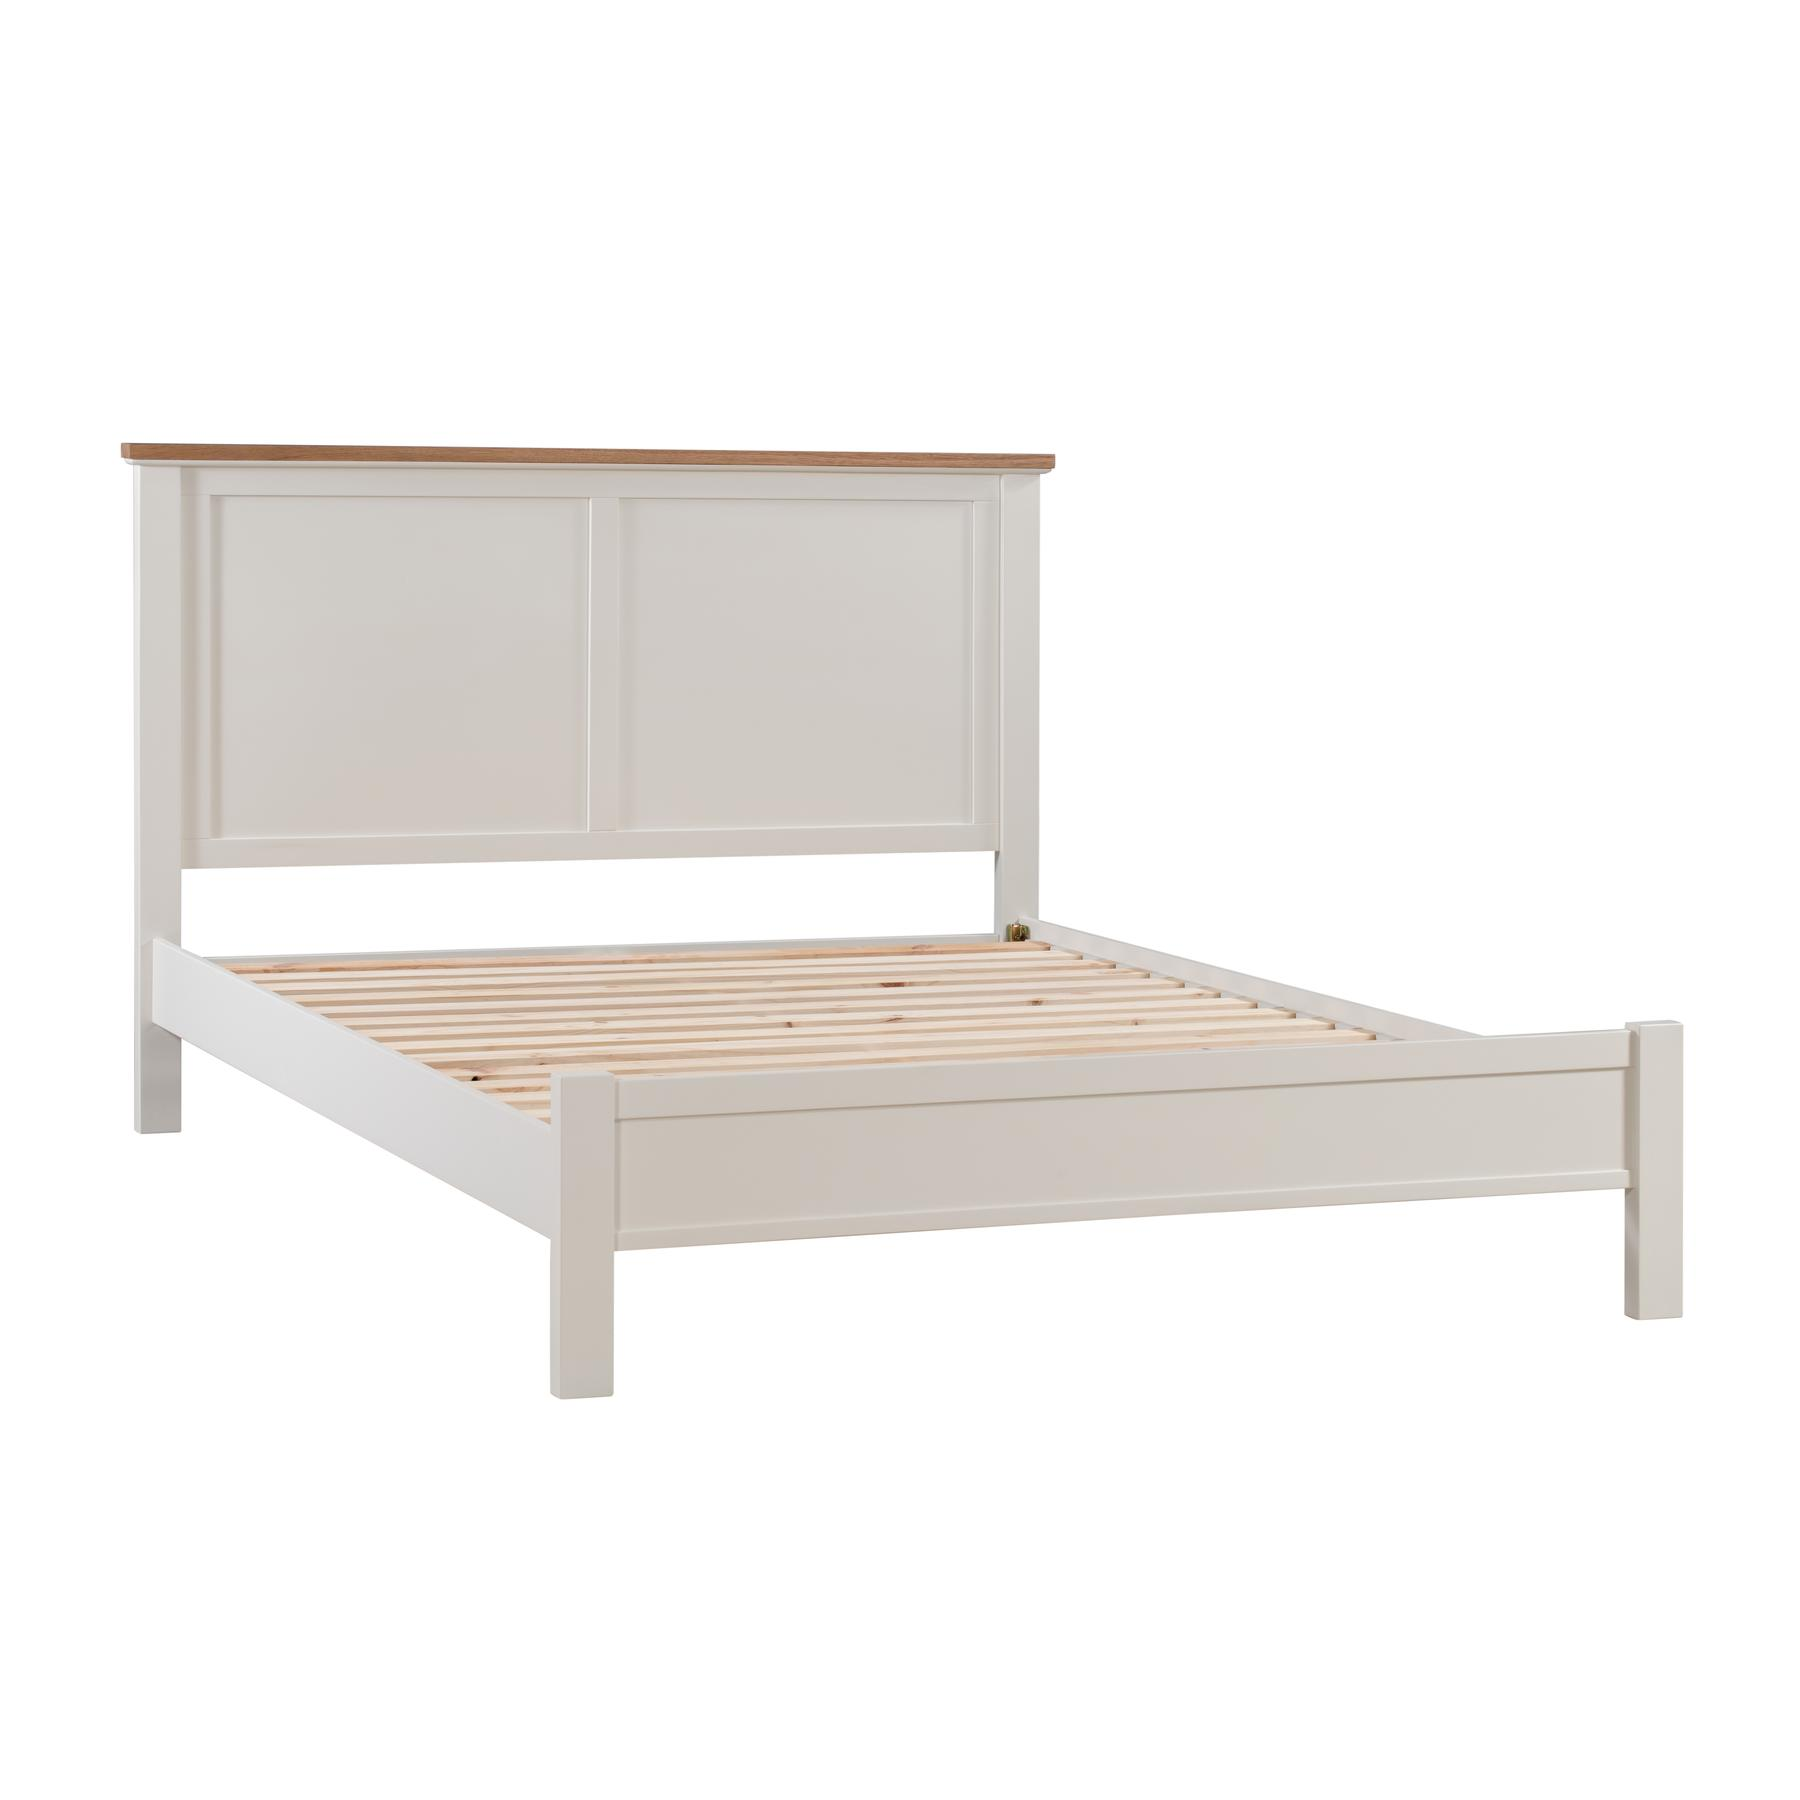 Ripley Oak Collection King Size Bed